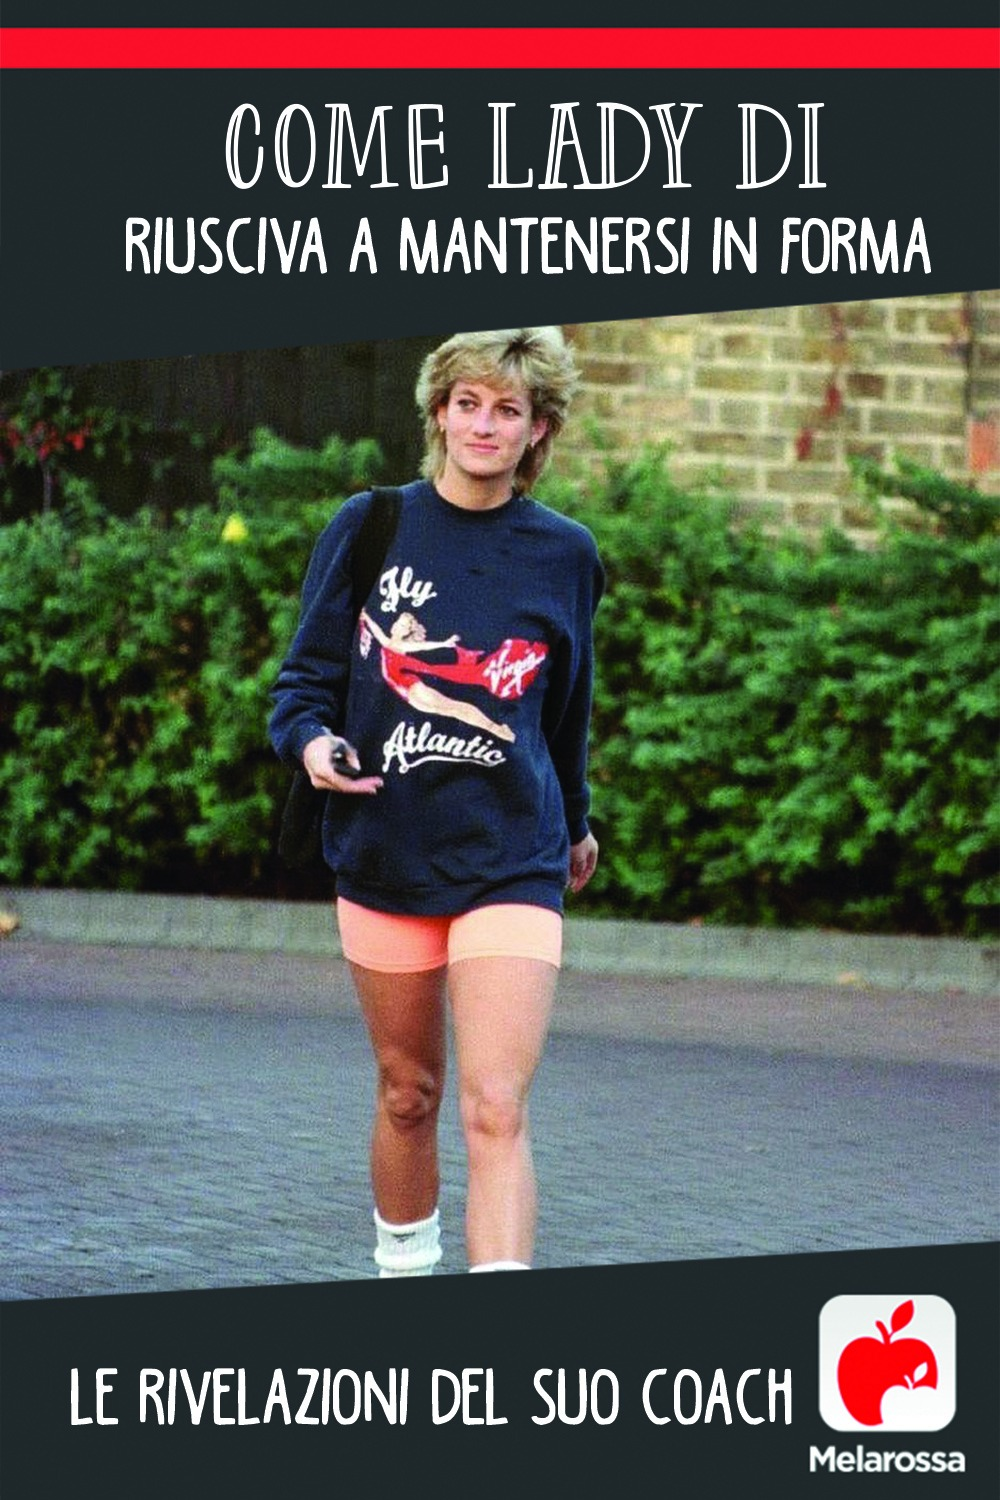 Lady Diana forma fisica